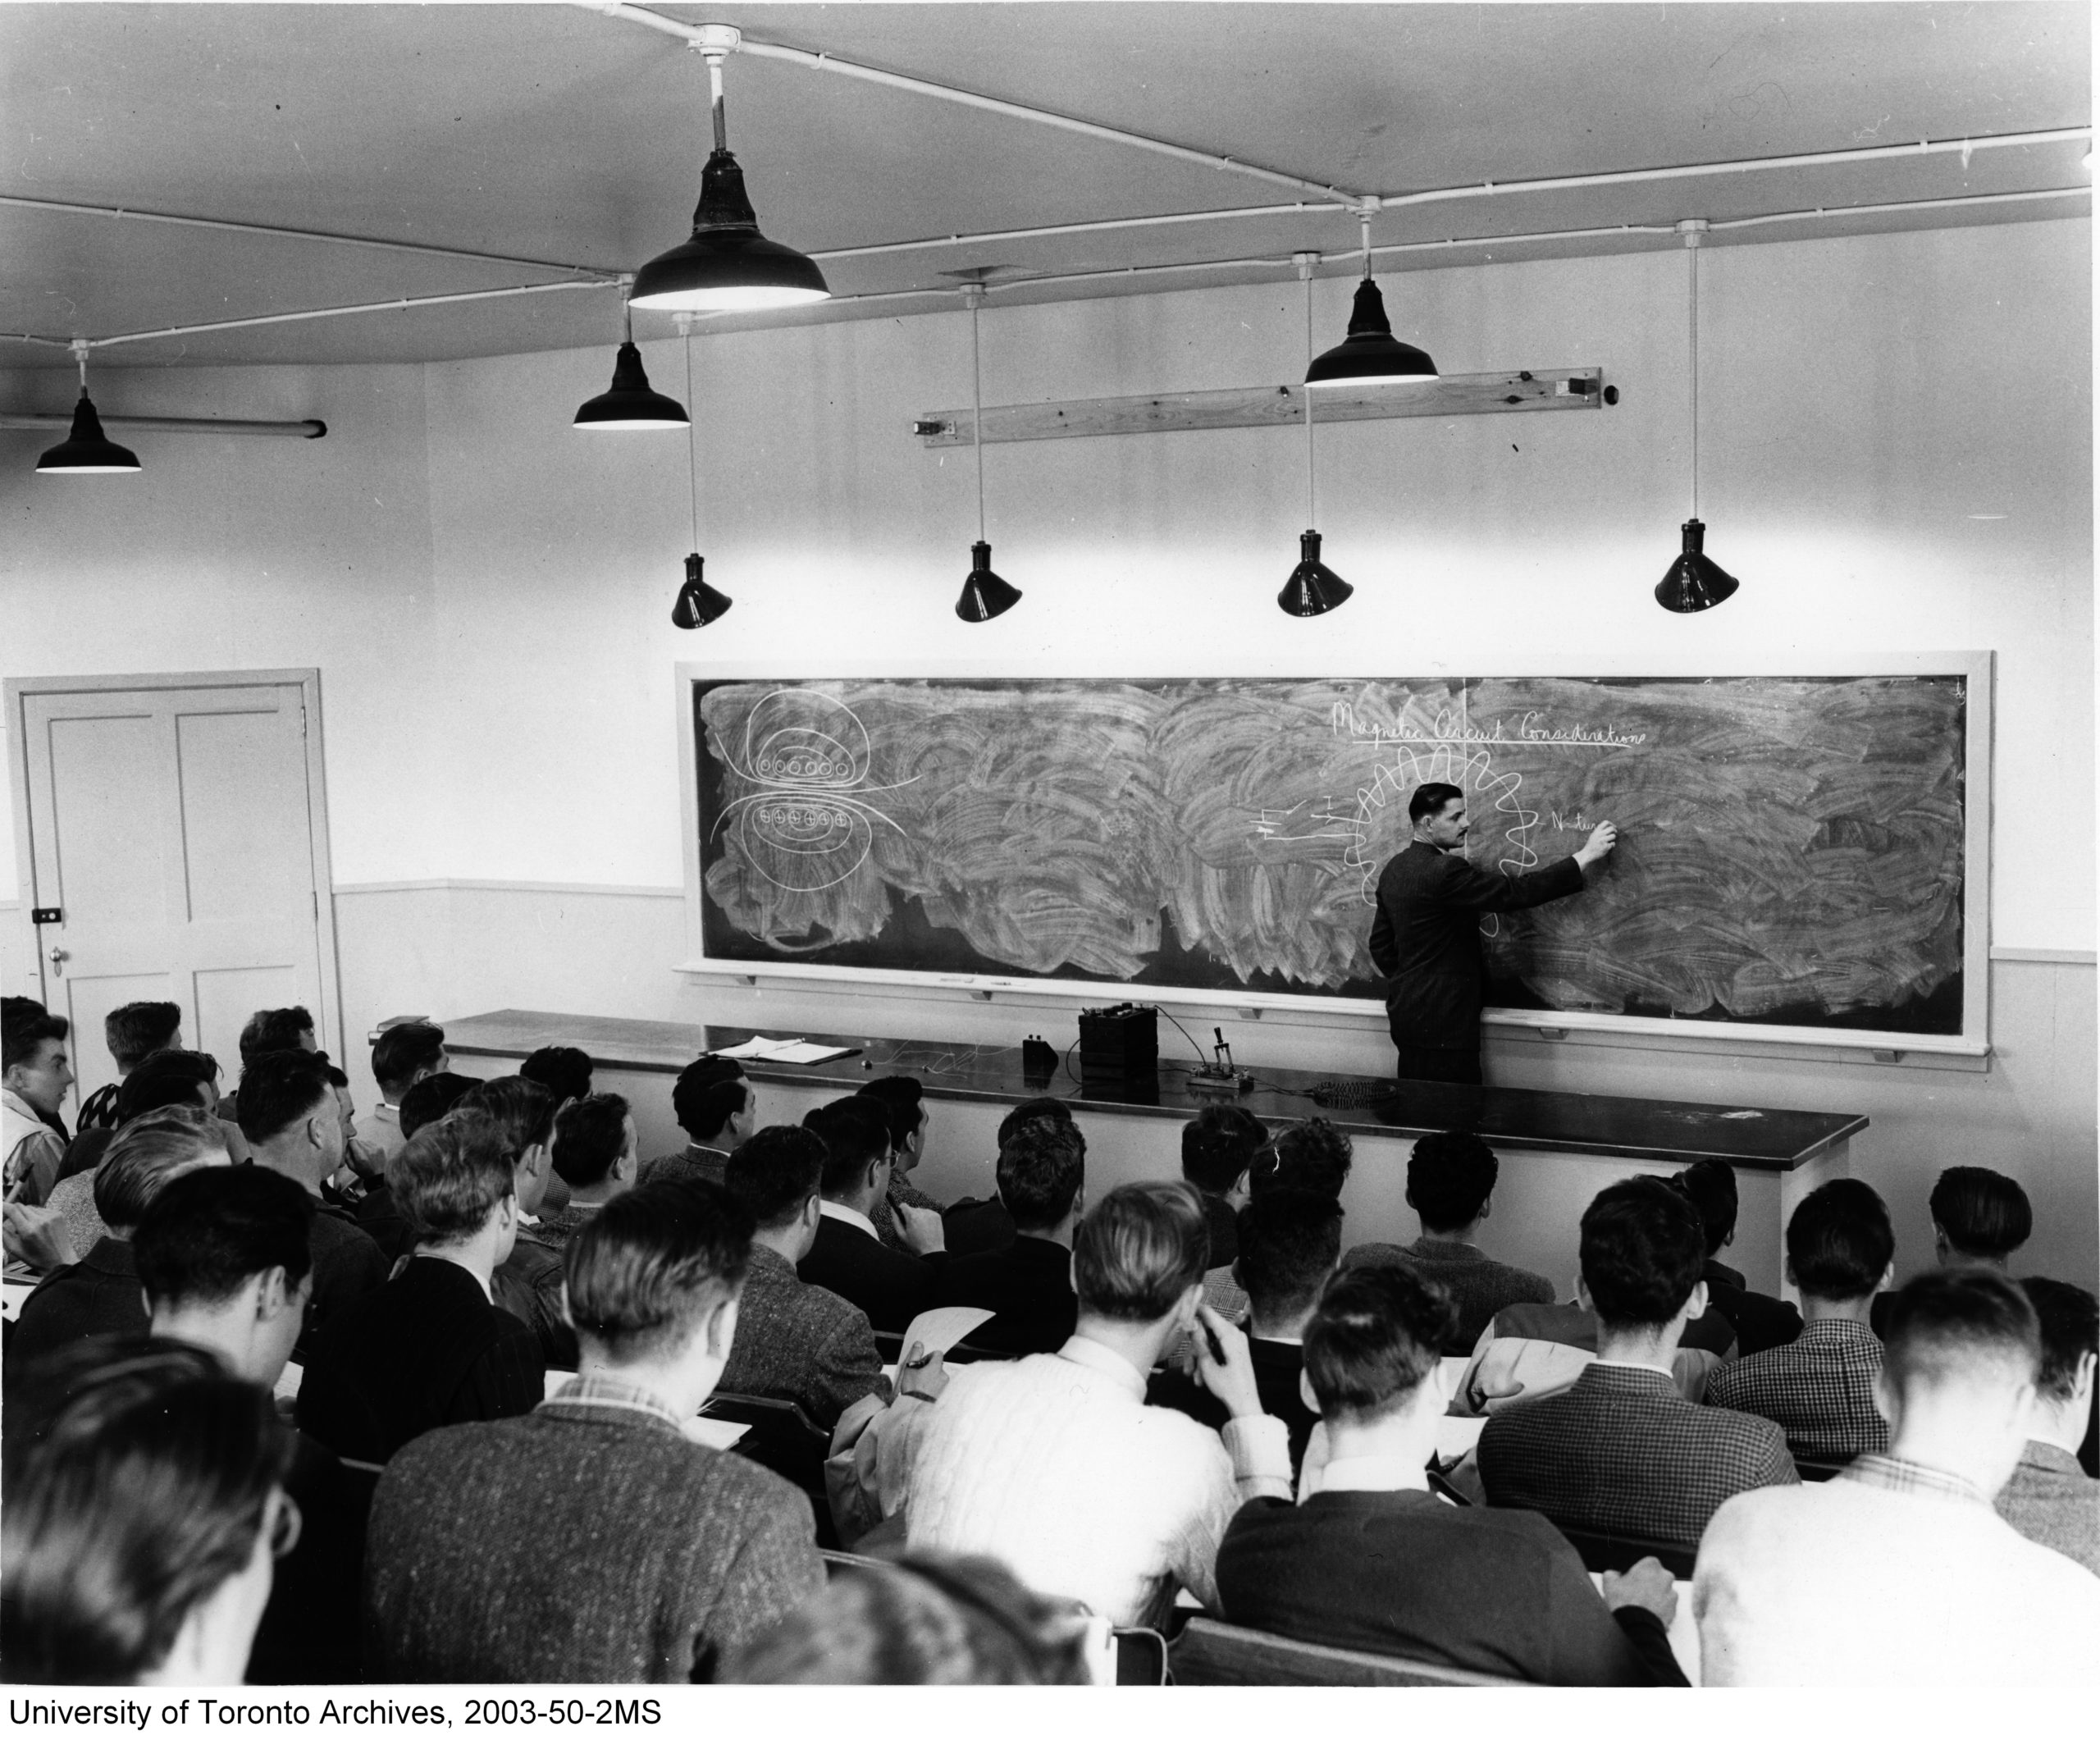 Students of the Faculty of Applied Science and Engineering listen to lecture by Ernie Wall while in class at the Ajax Campus